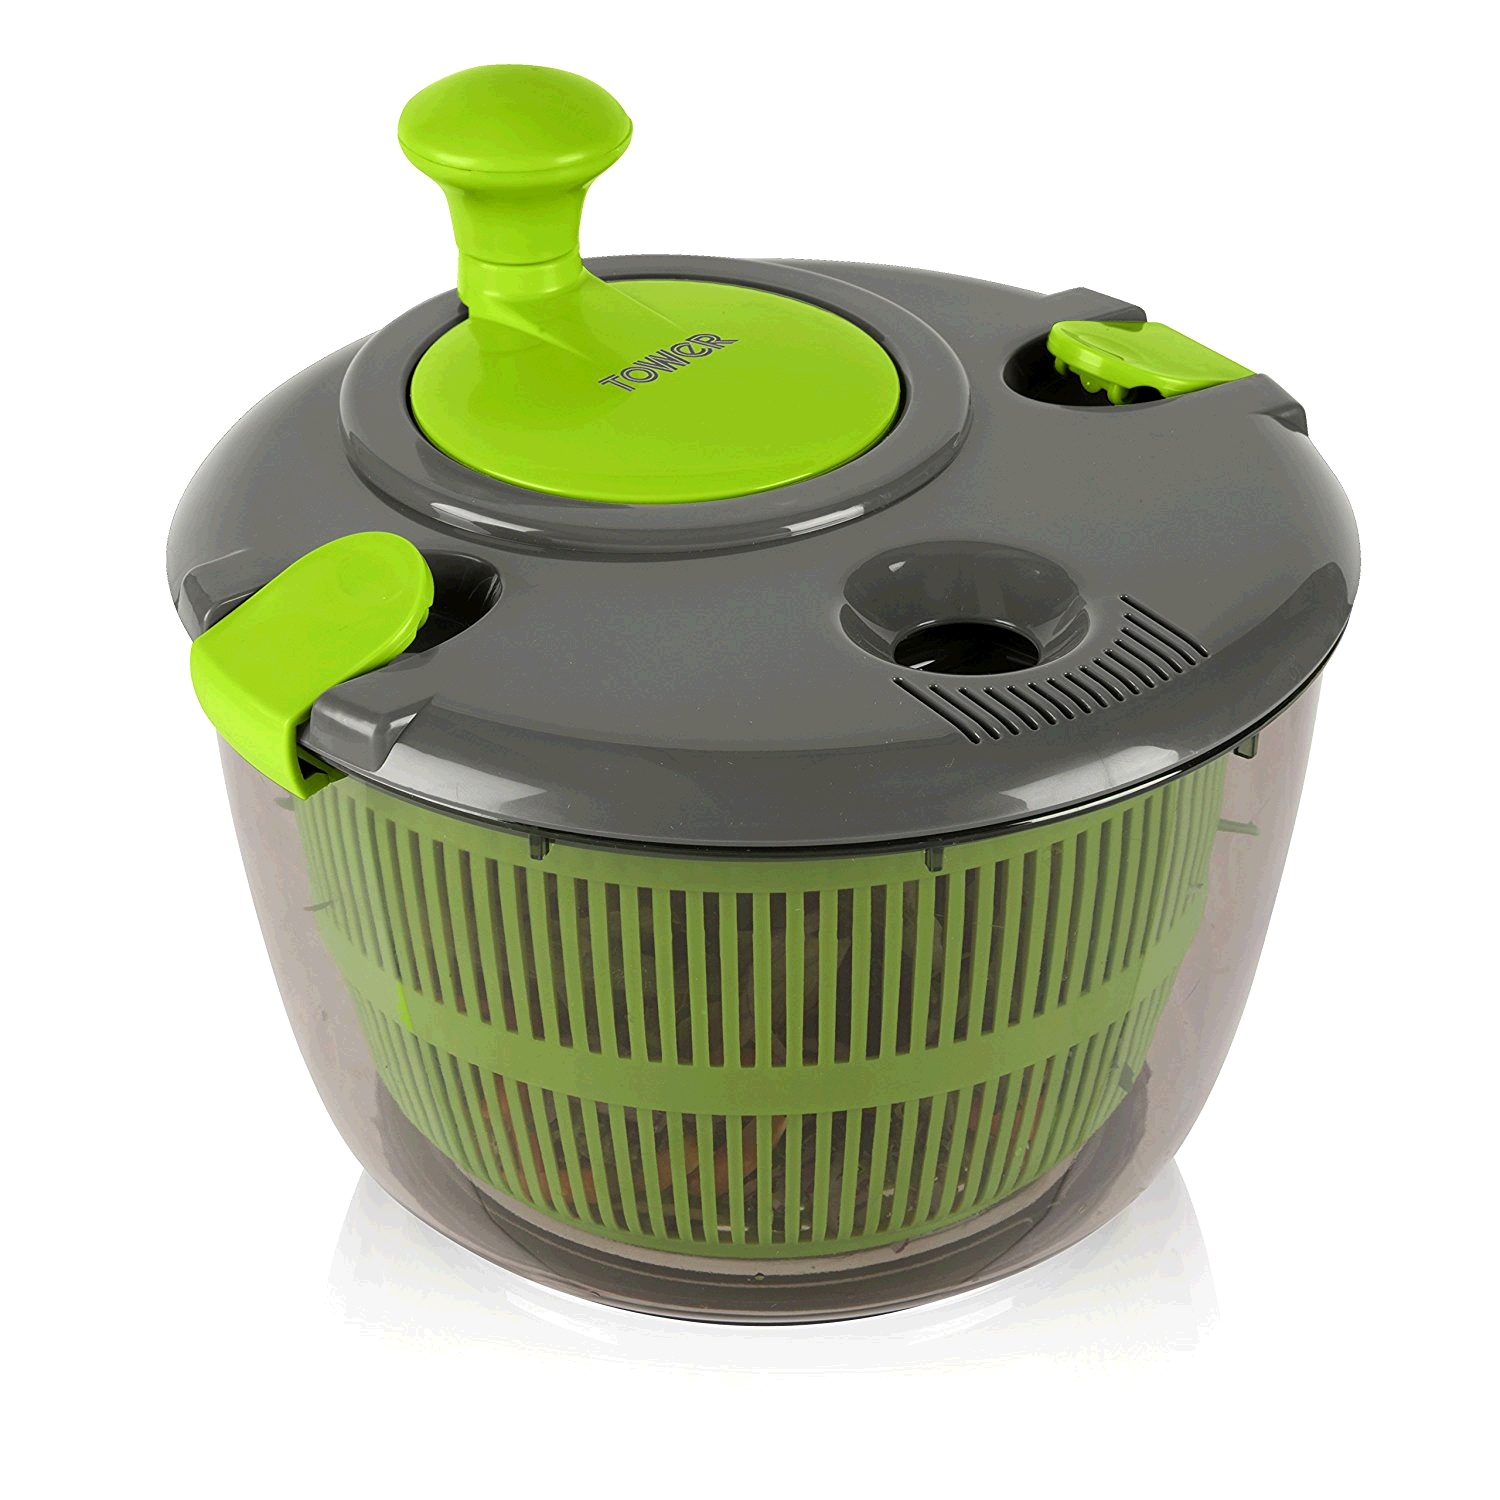 Tower Salad Spinner Green and Graphite